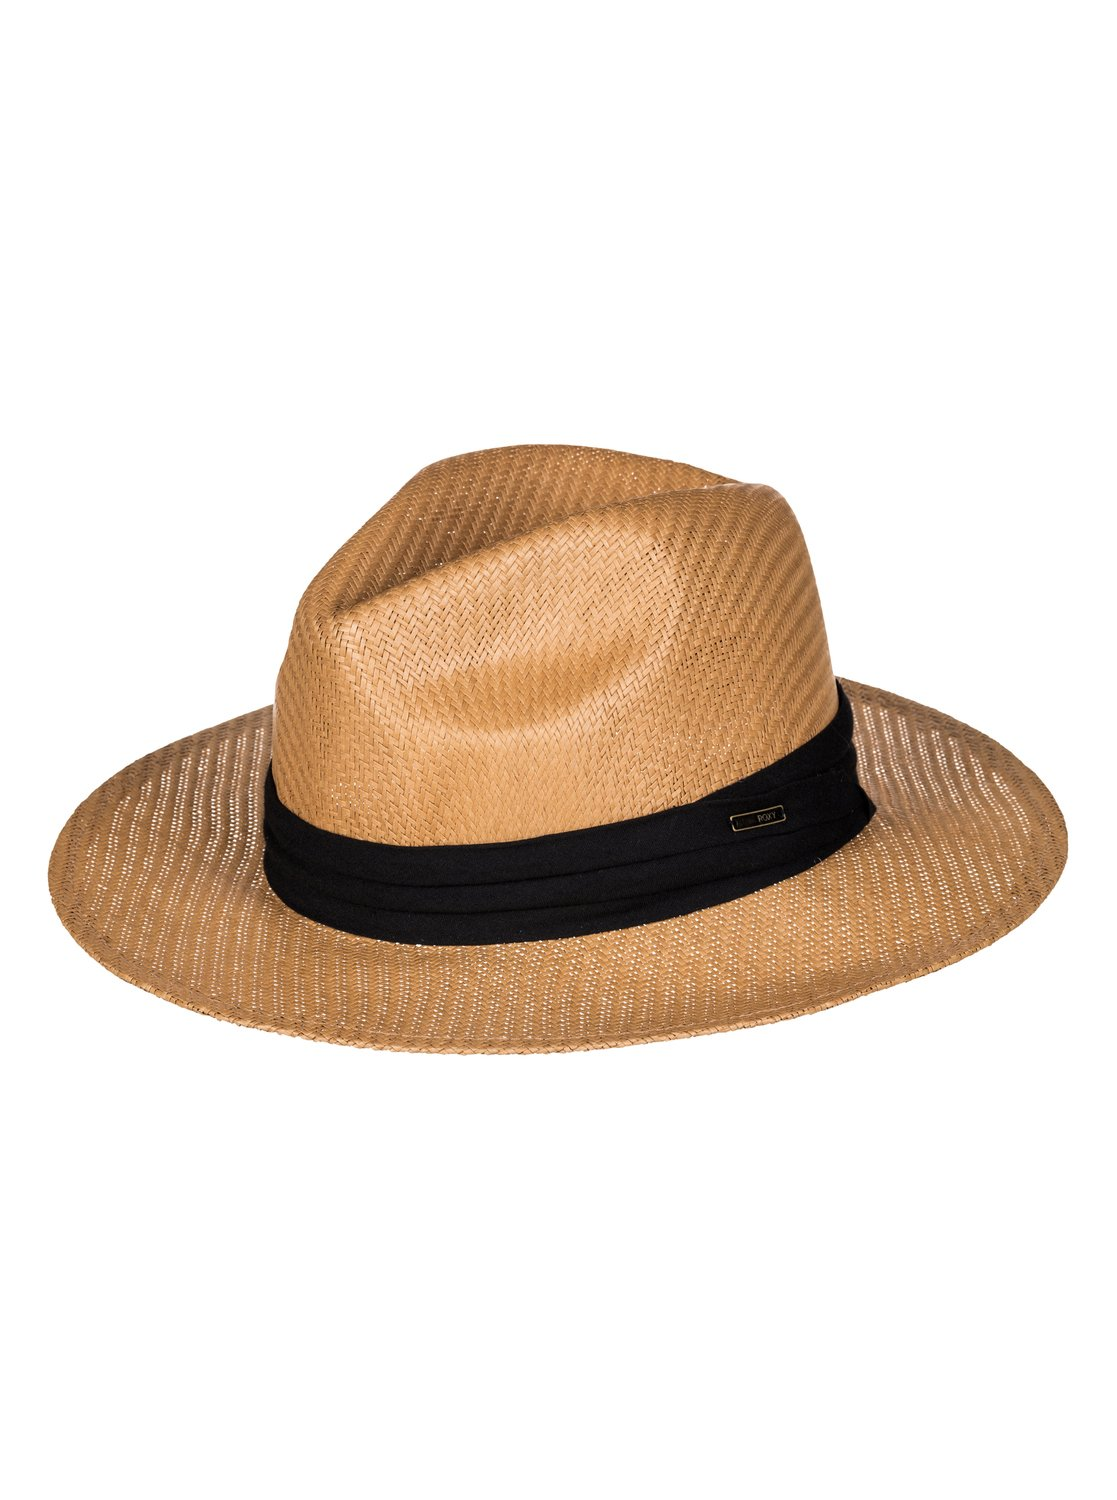 Here We Go - Panama Hat<br>